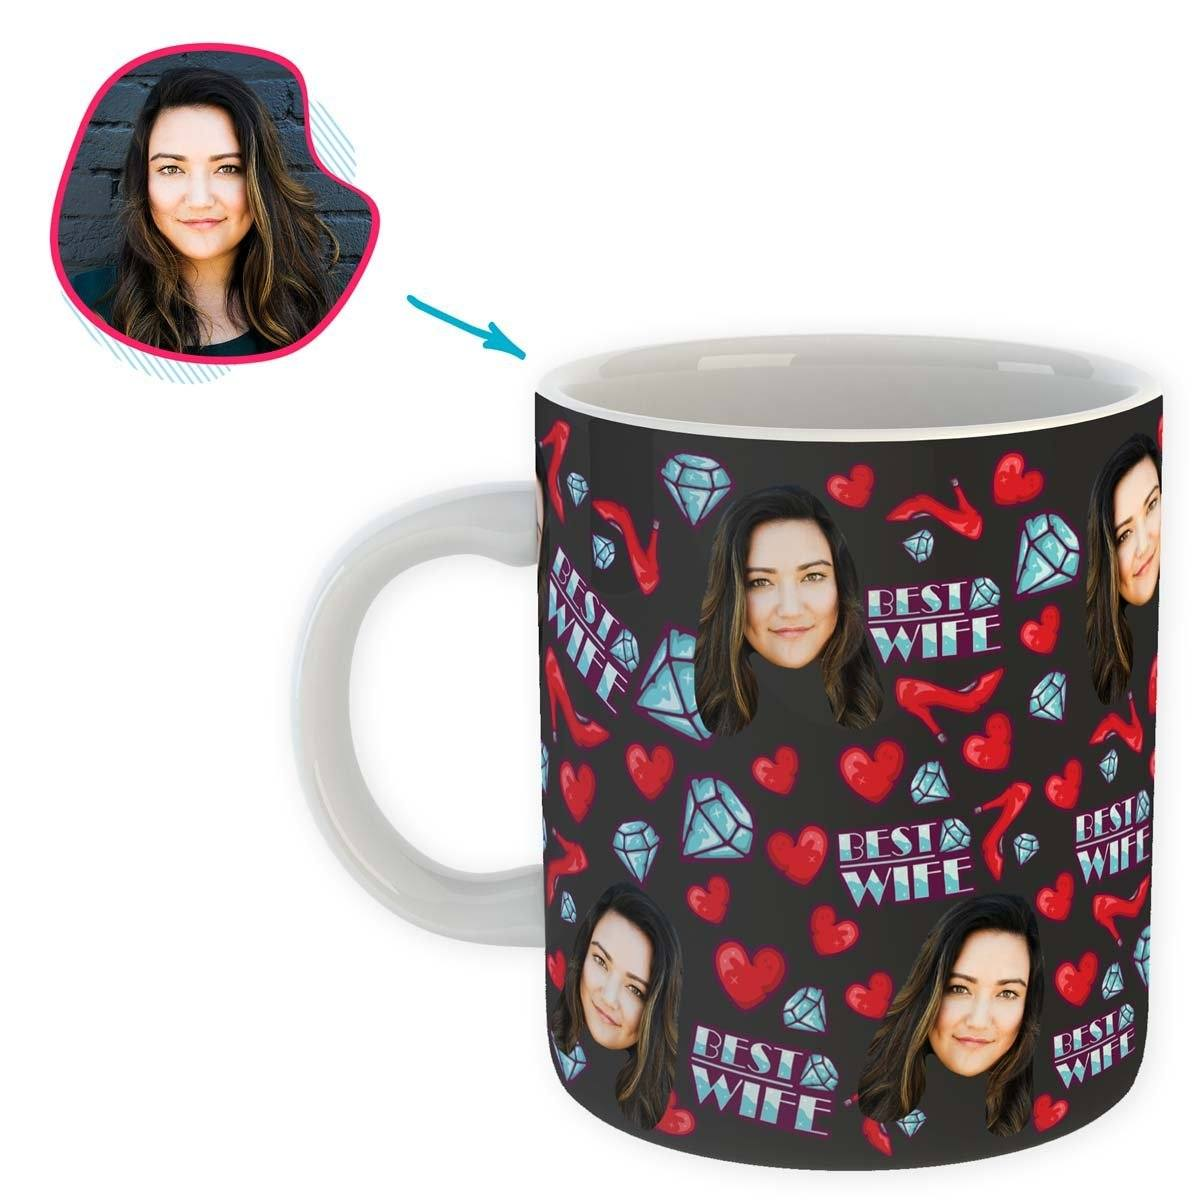 Dark Wife personalized mug with photo of face printed on it